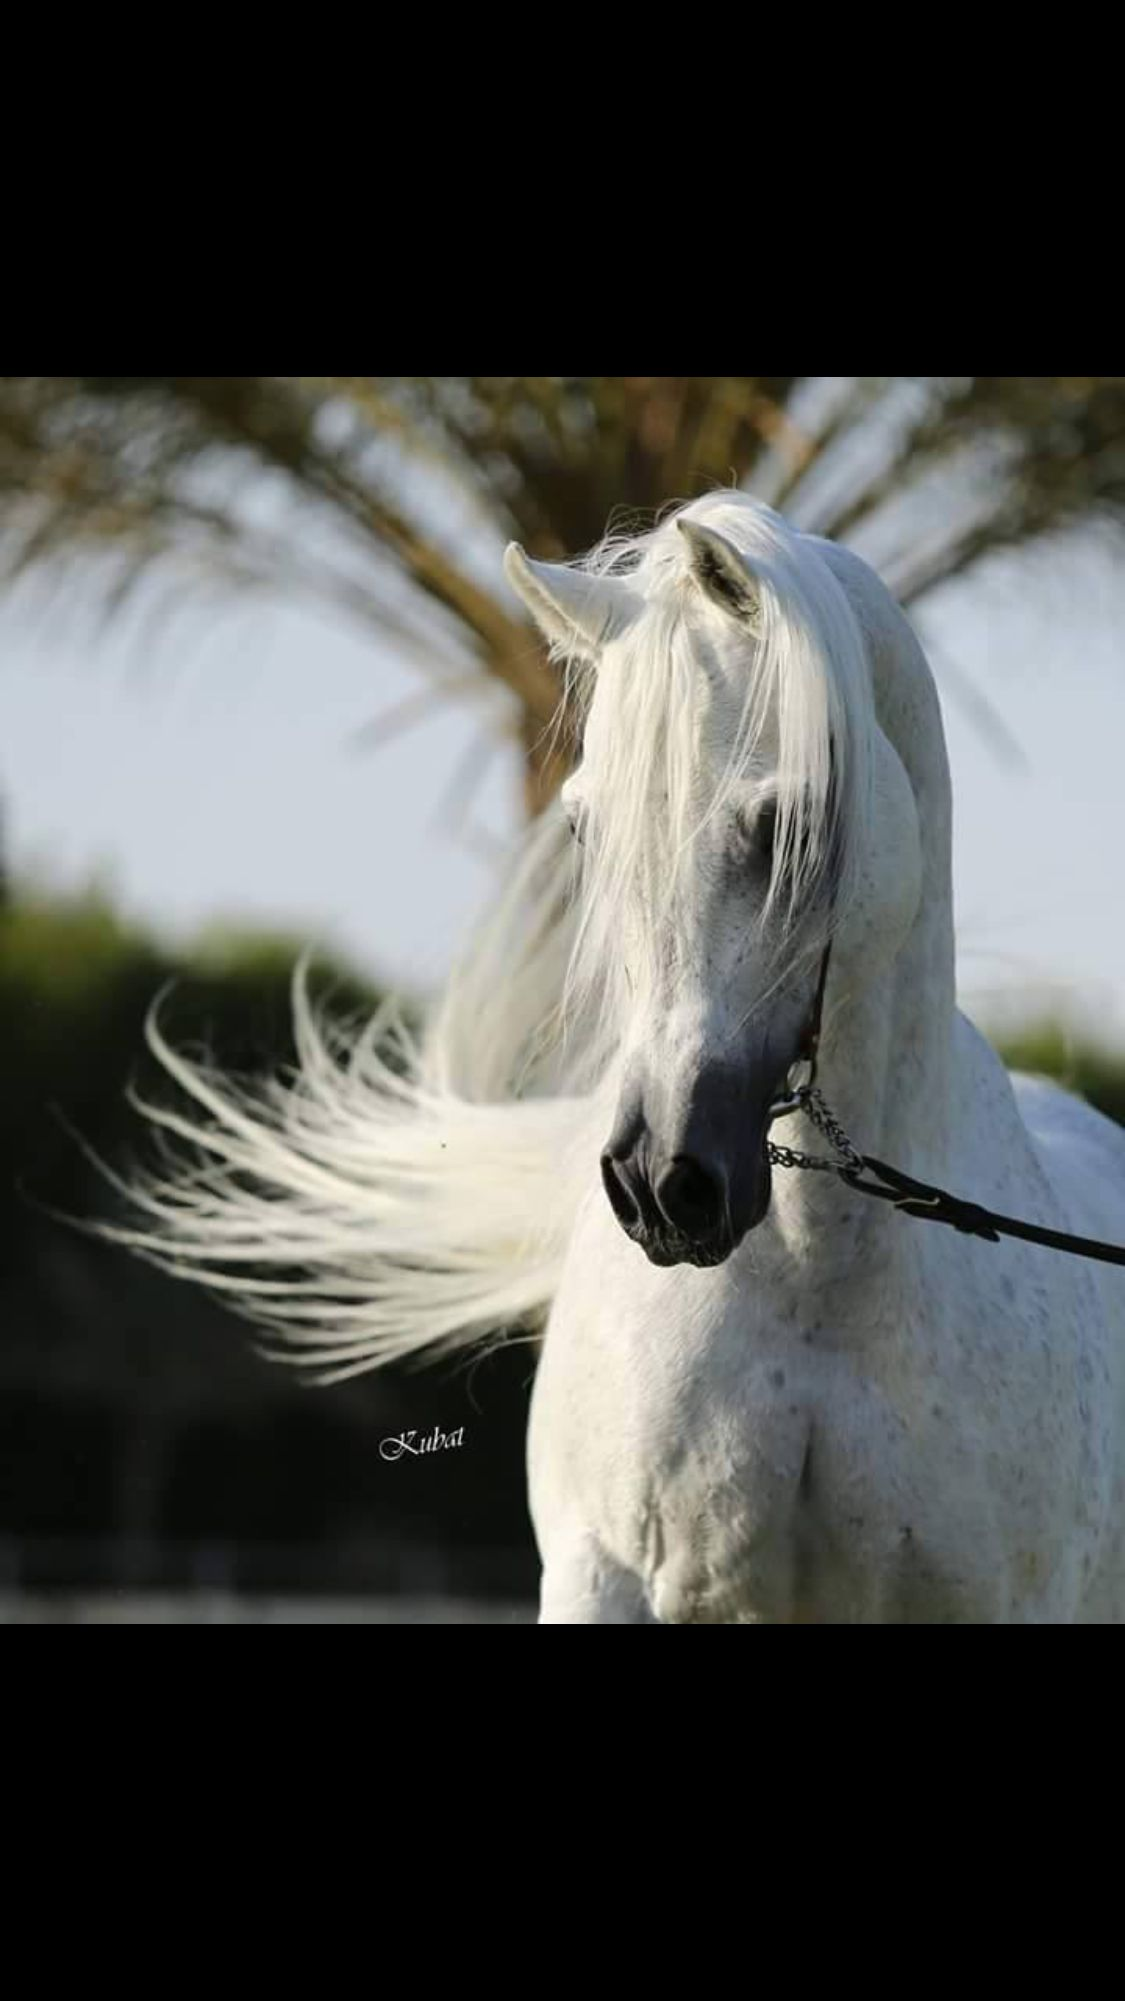 Pin By Clelia Lambir On My Entire World Revolves Around Them Beautiful Horses Horses Arabian Horse